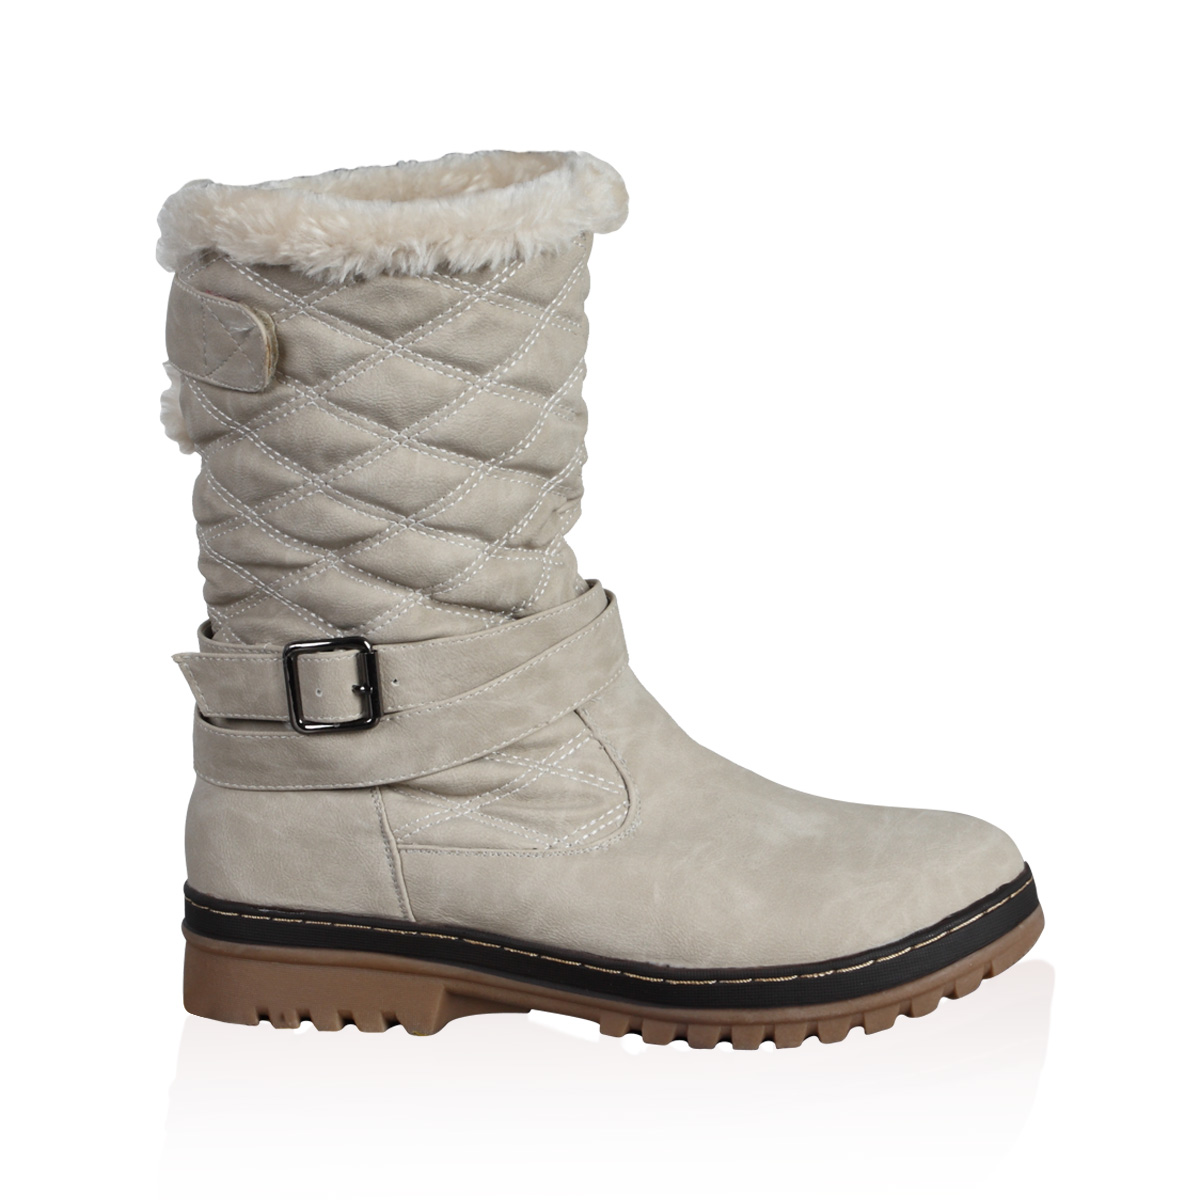 NEW WOMENS GREY QUILTED LADIES FAUX FUR GRIP WINTER SNOW